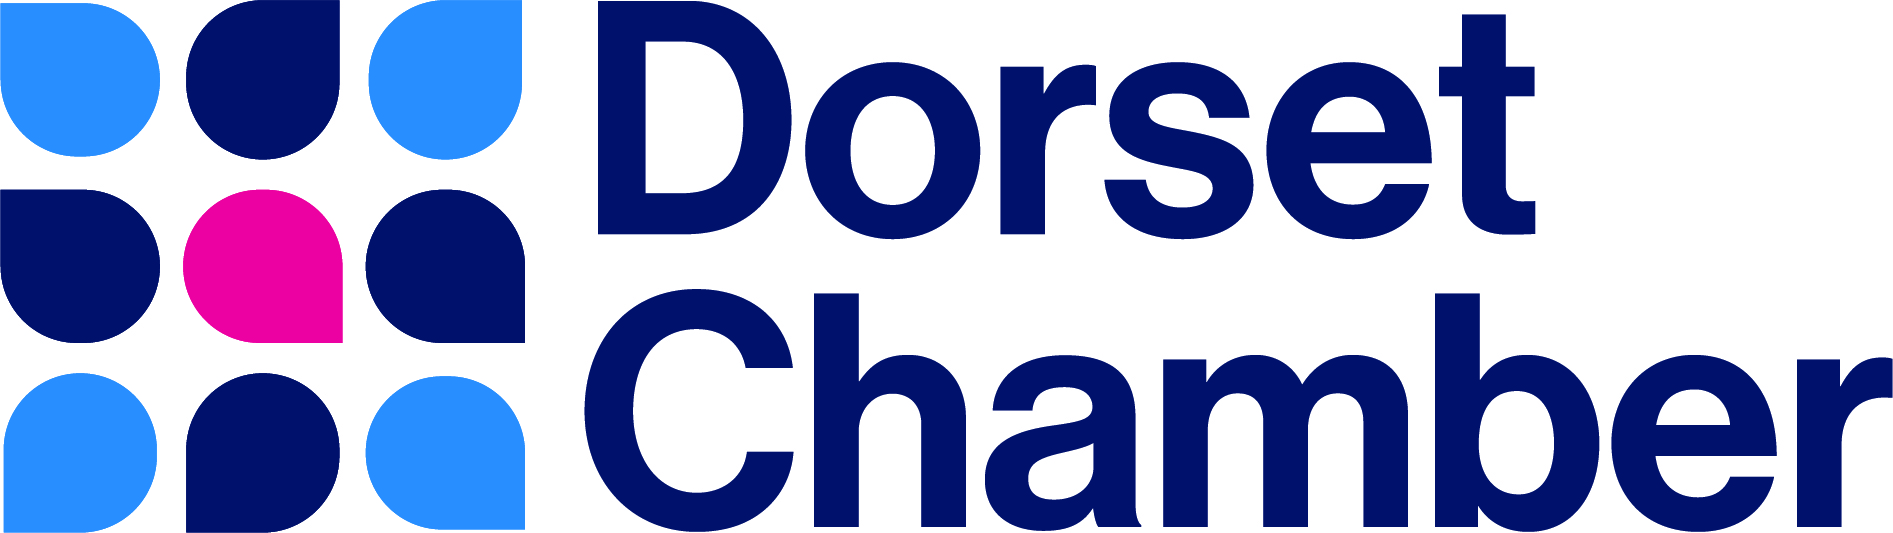 DorsetChamber_logo_colour (002)